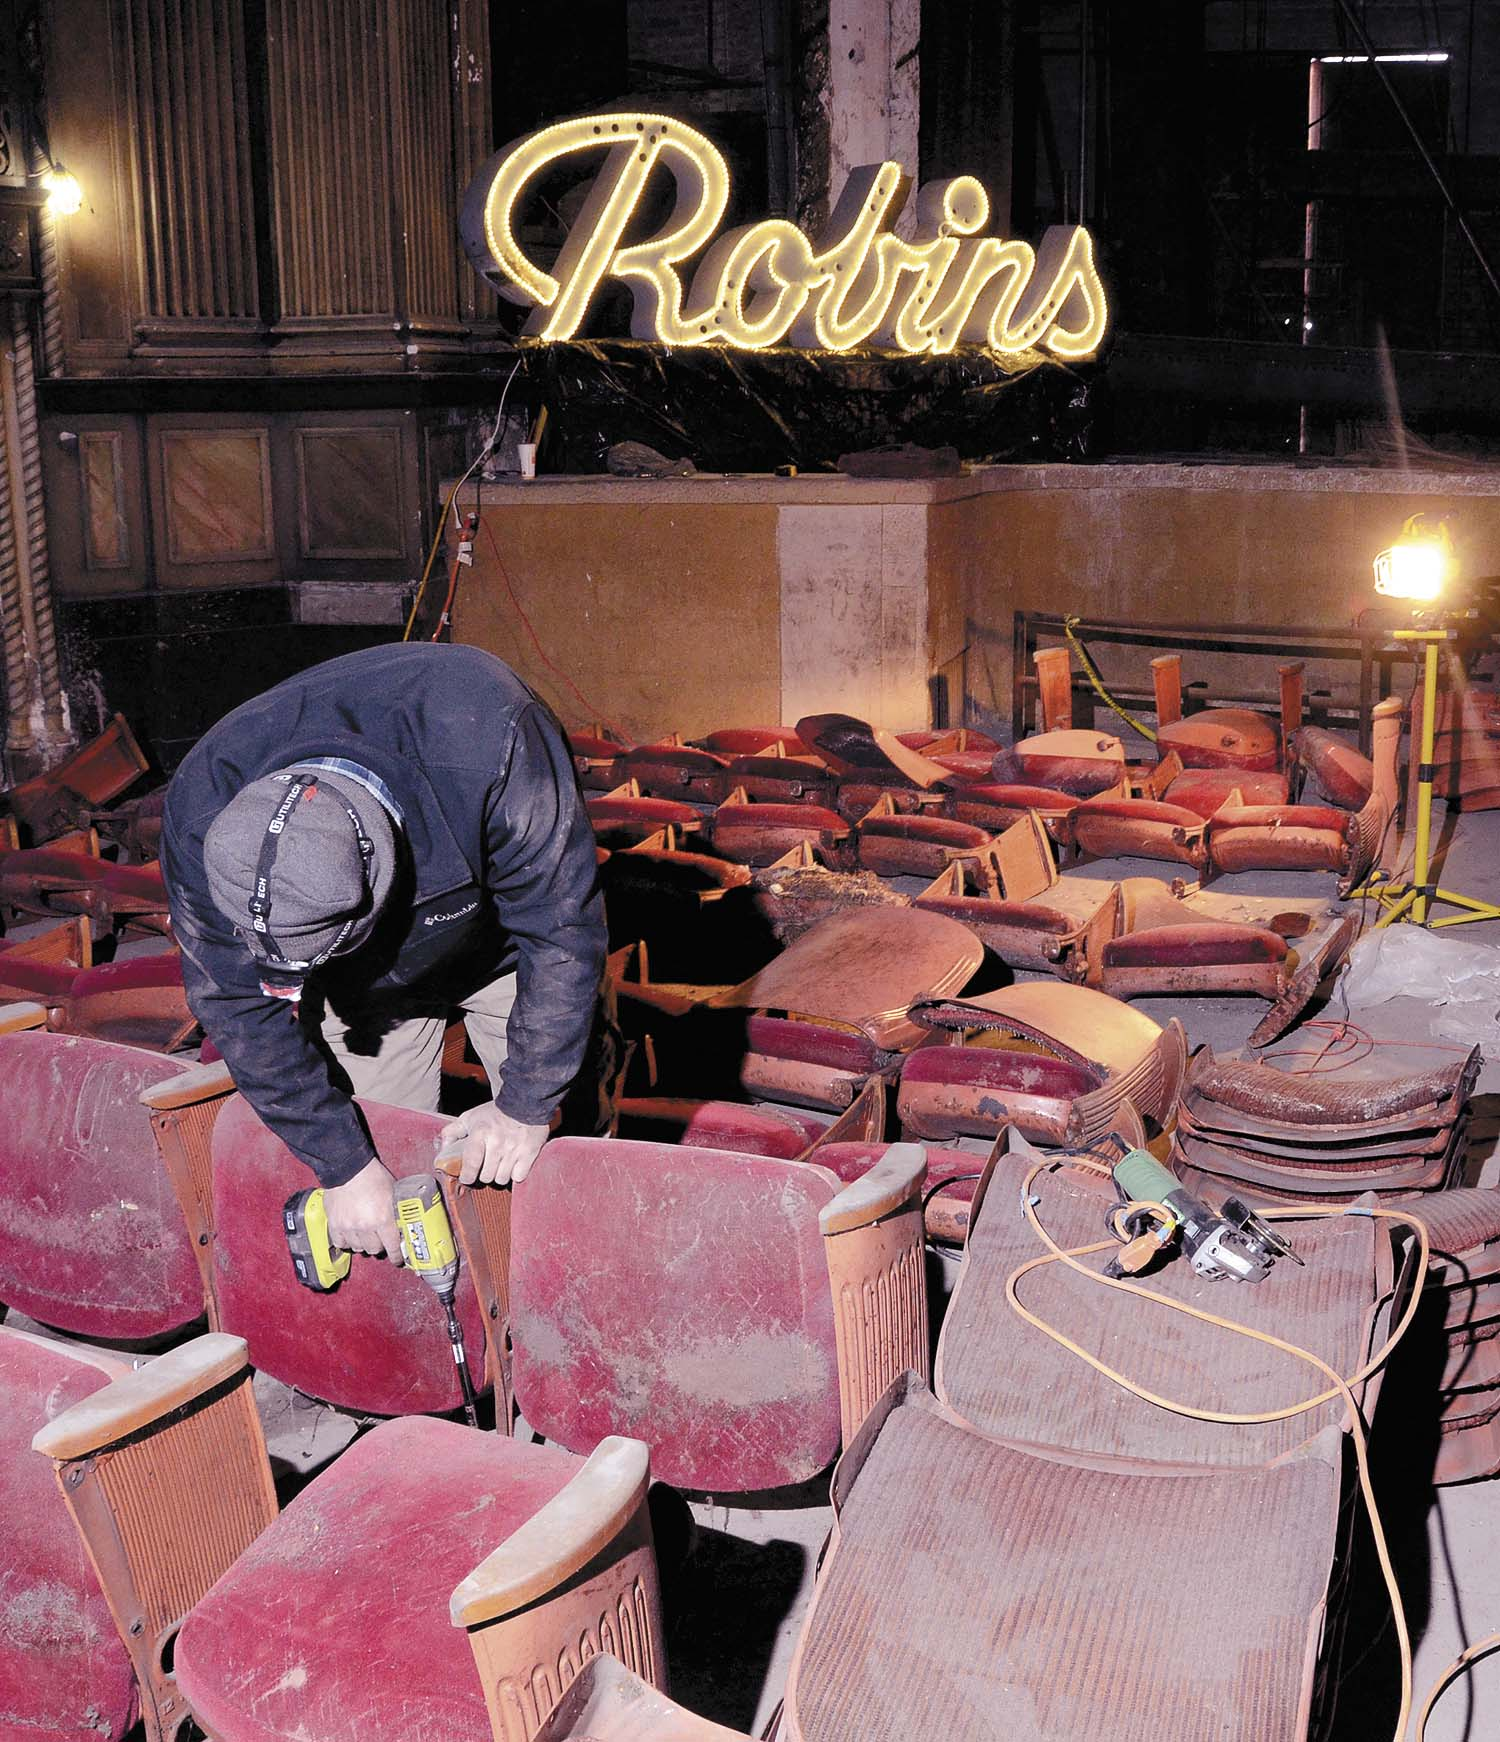 Robins Theatre Seat Removal Begins News Sports Jobs